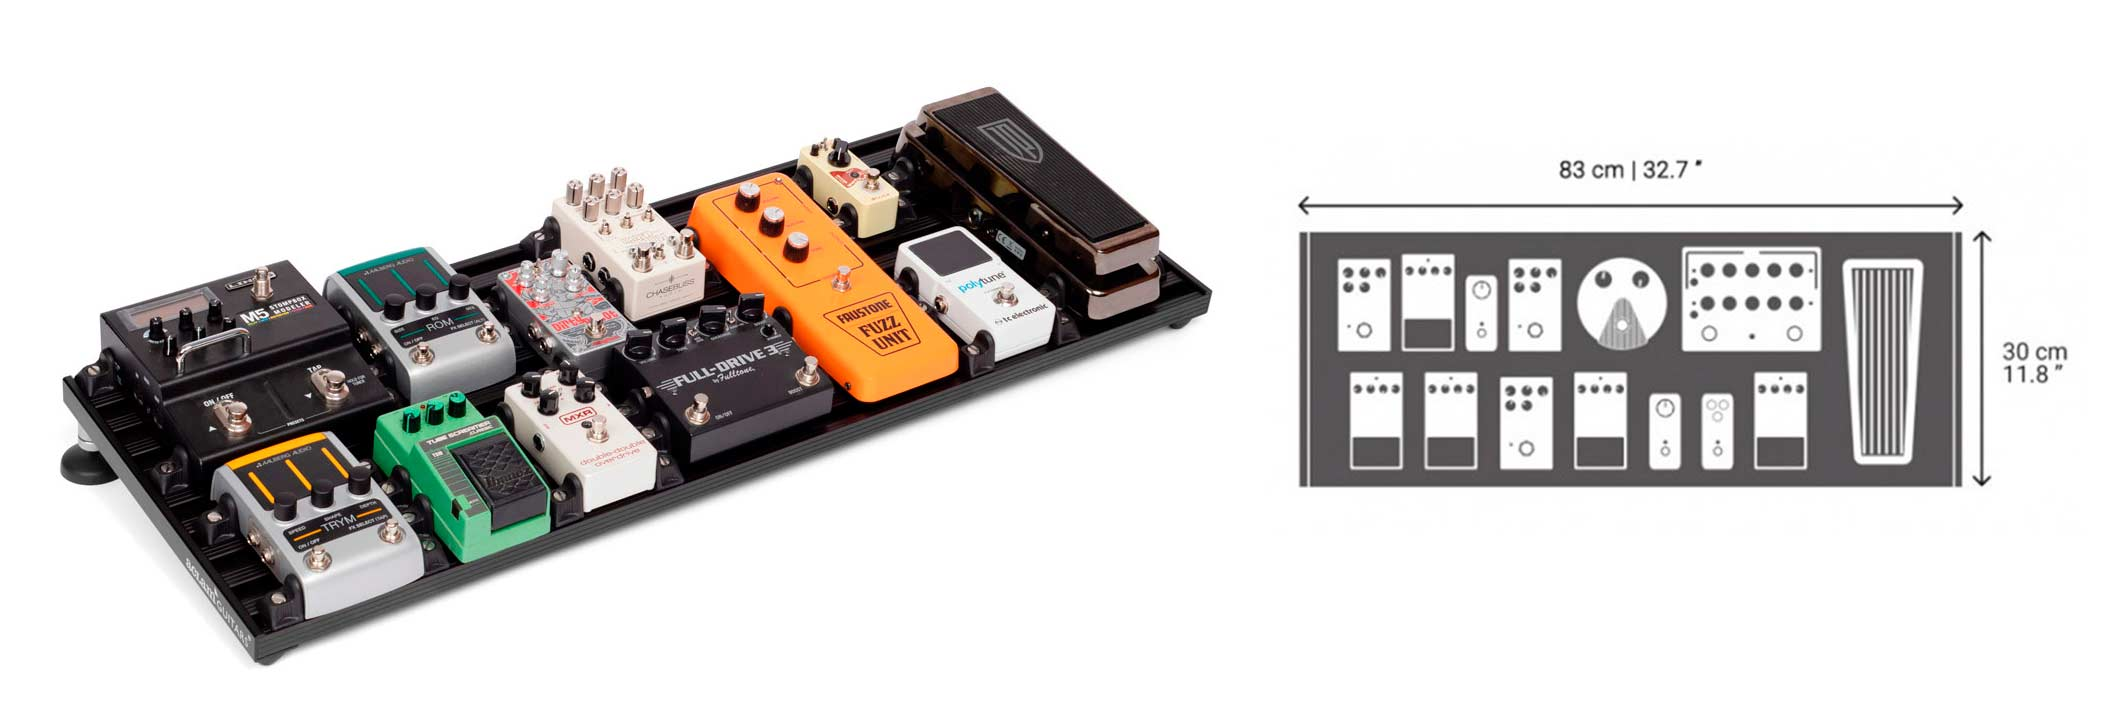 Aclam pedalboard size L2